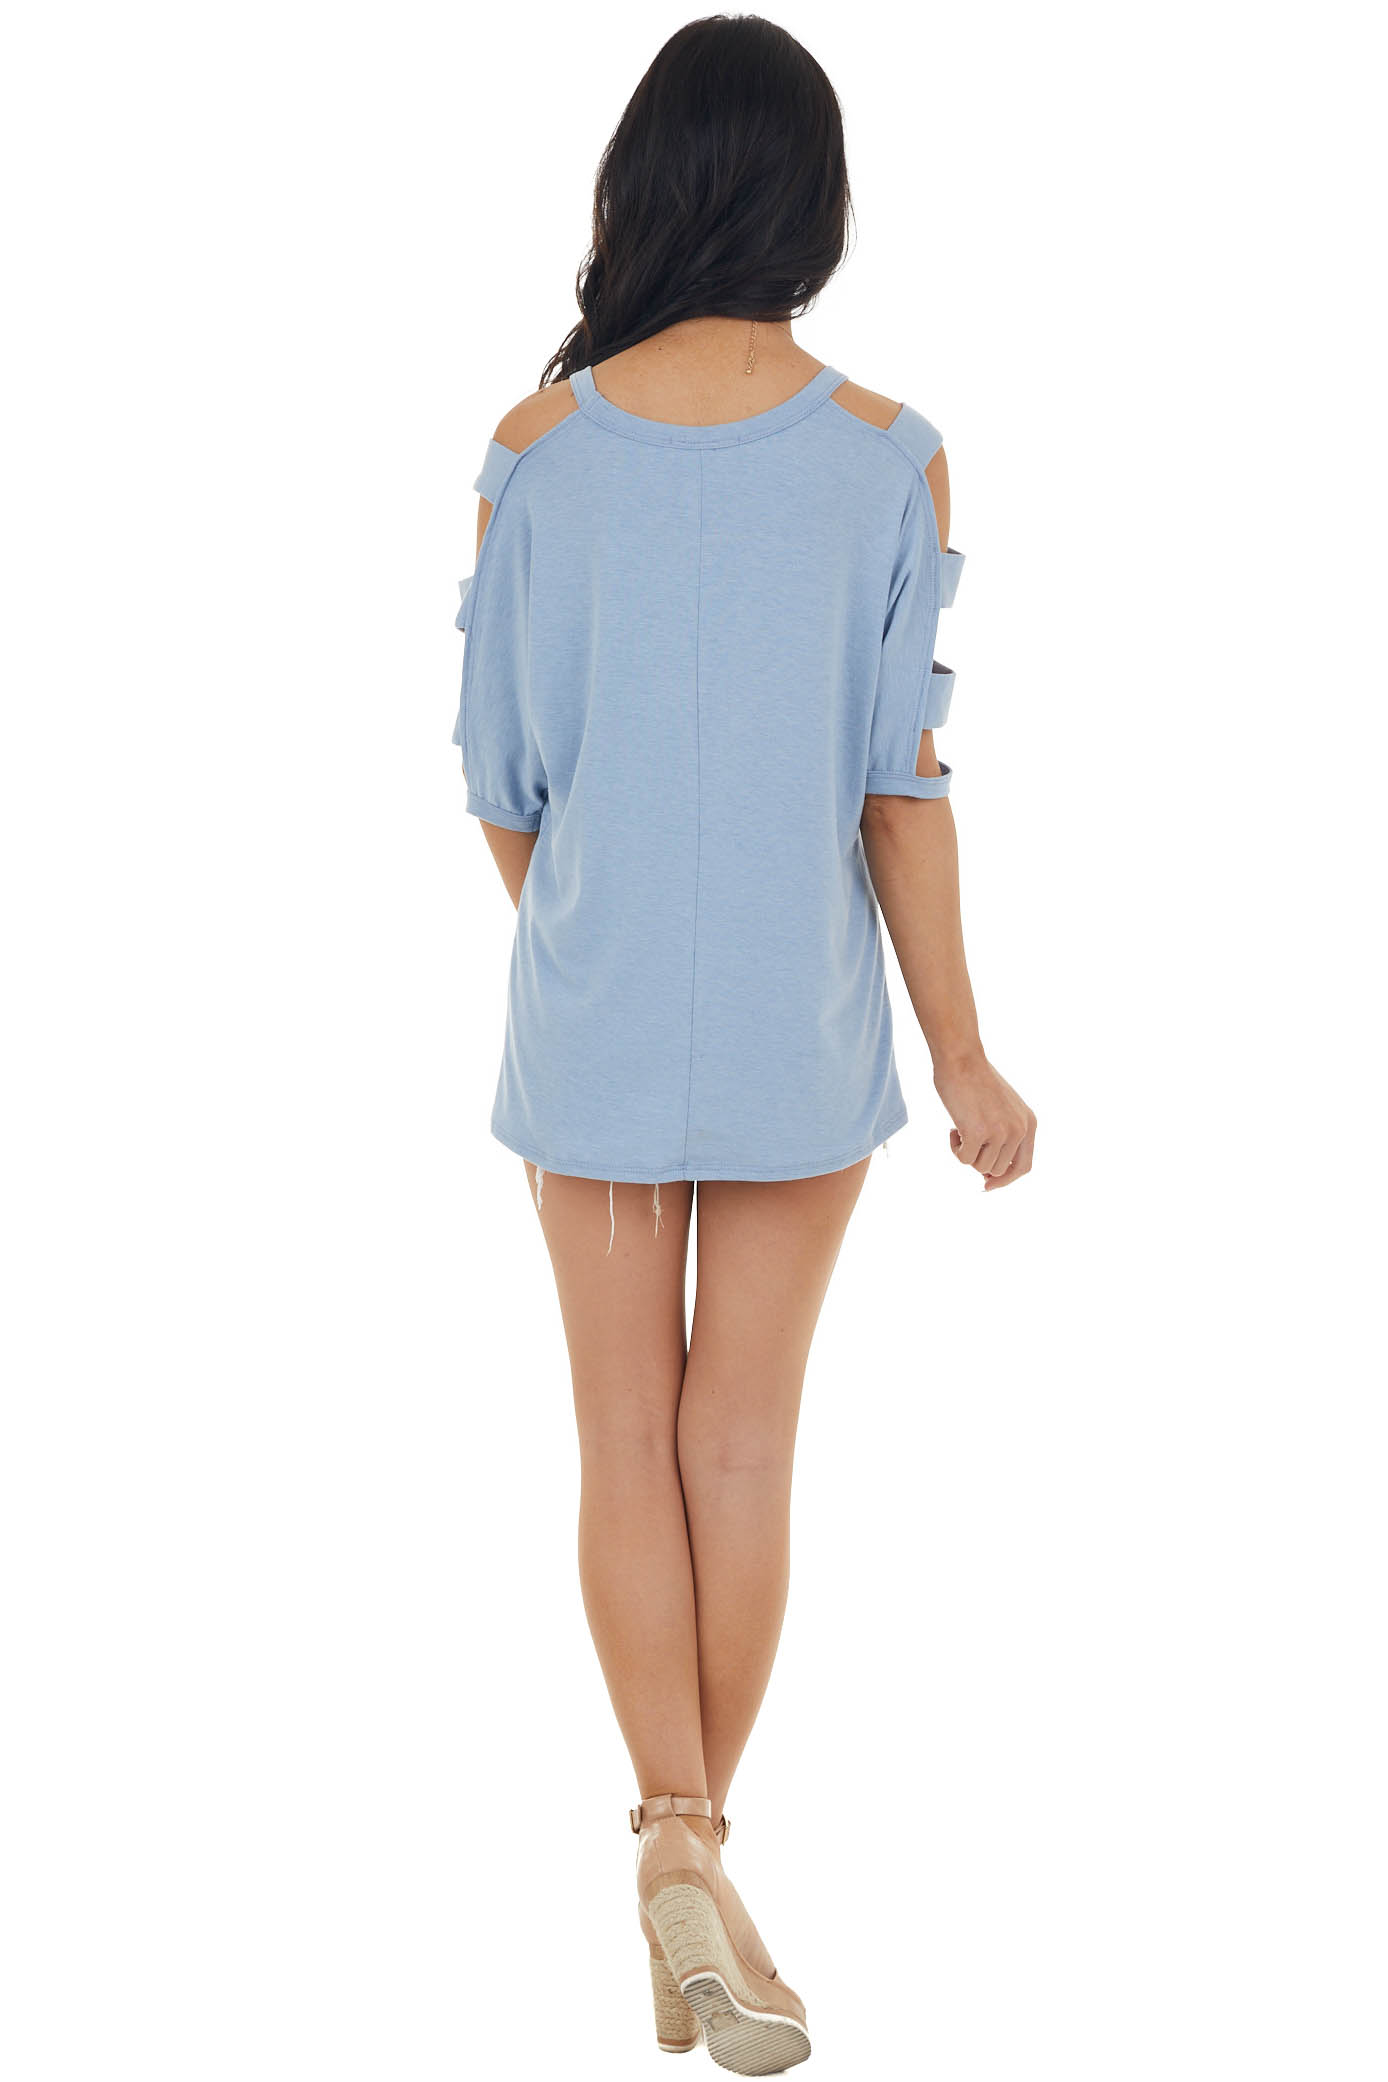 Powder Blue Knit Top with Ladder Cut Out Half Length Sleeves